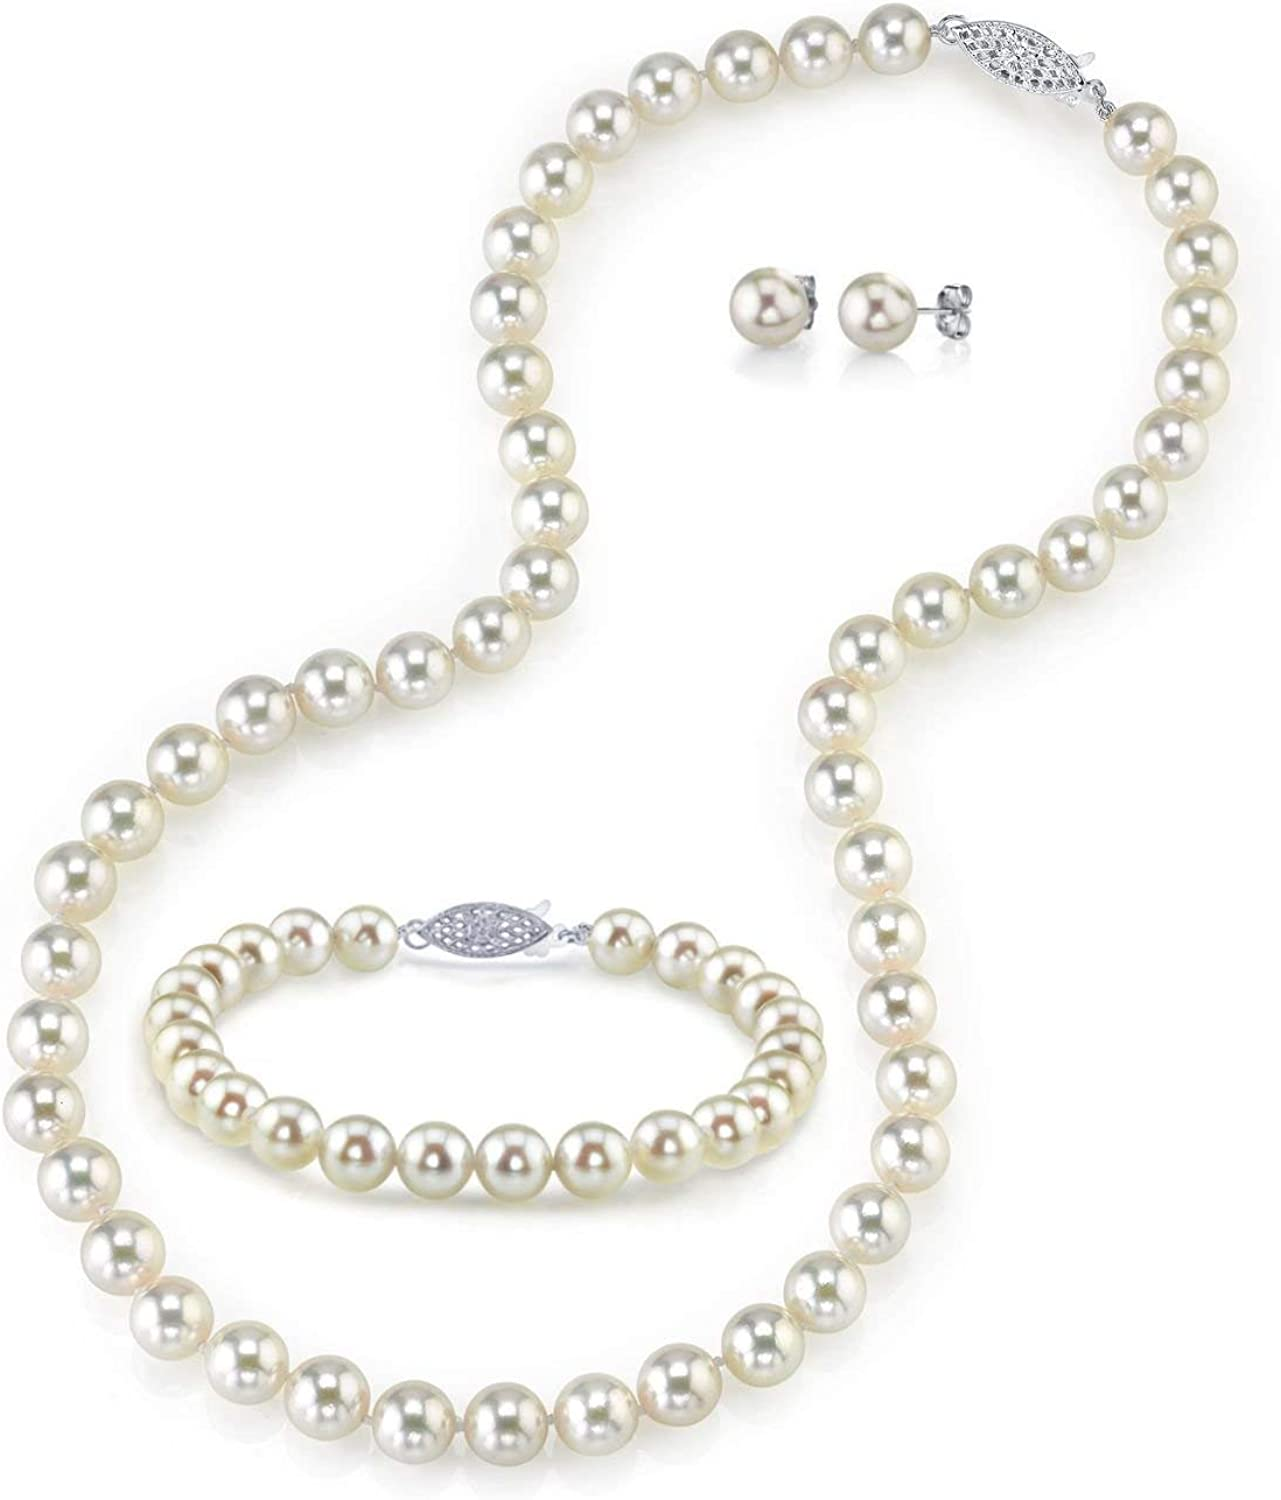 THE Regular store PEARL SOURCE 5 ☆ popular 14K Gold 6-6.5mm White Akoya Pea Cultured Round